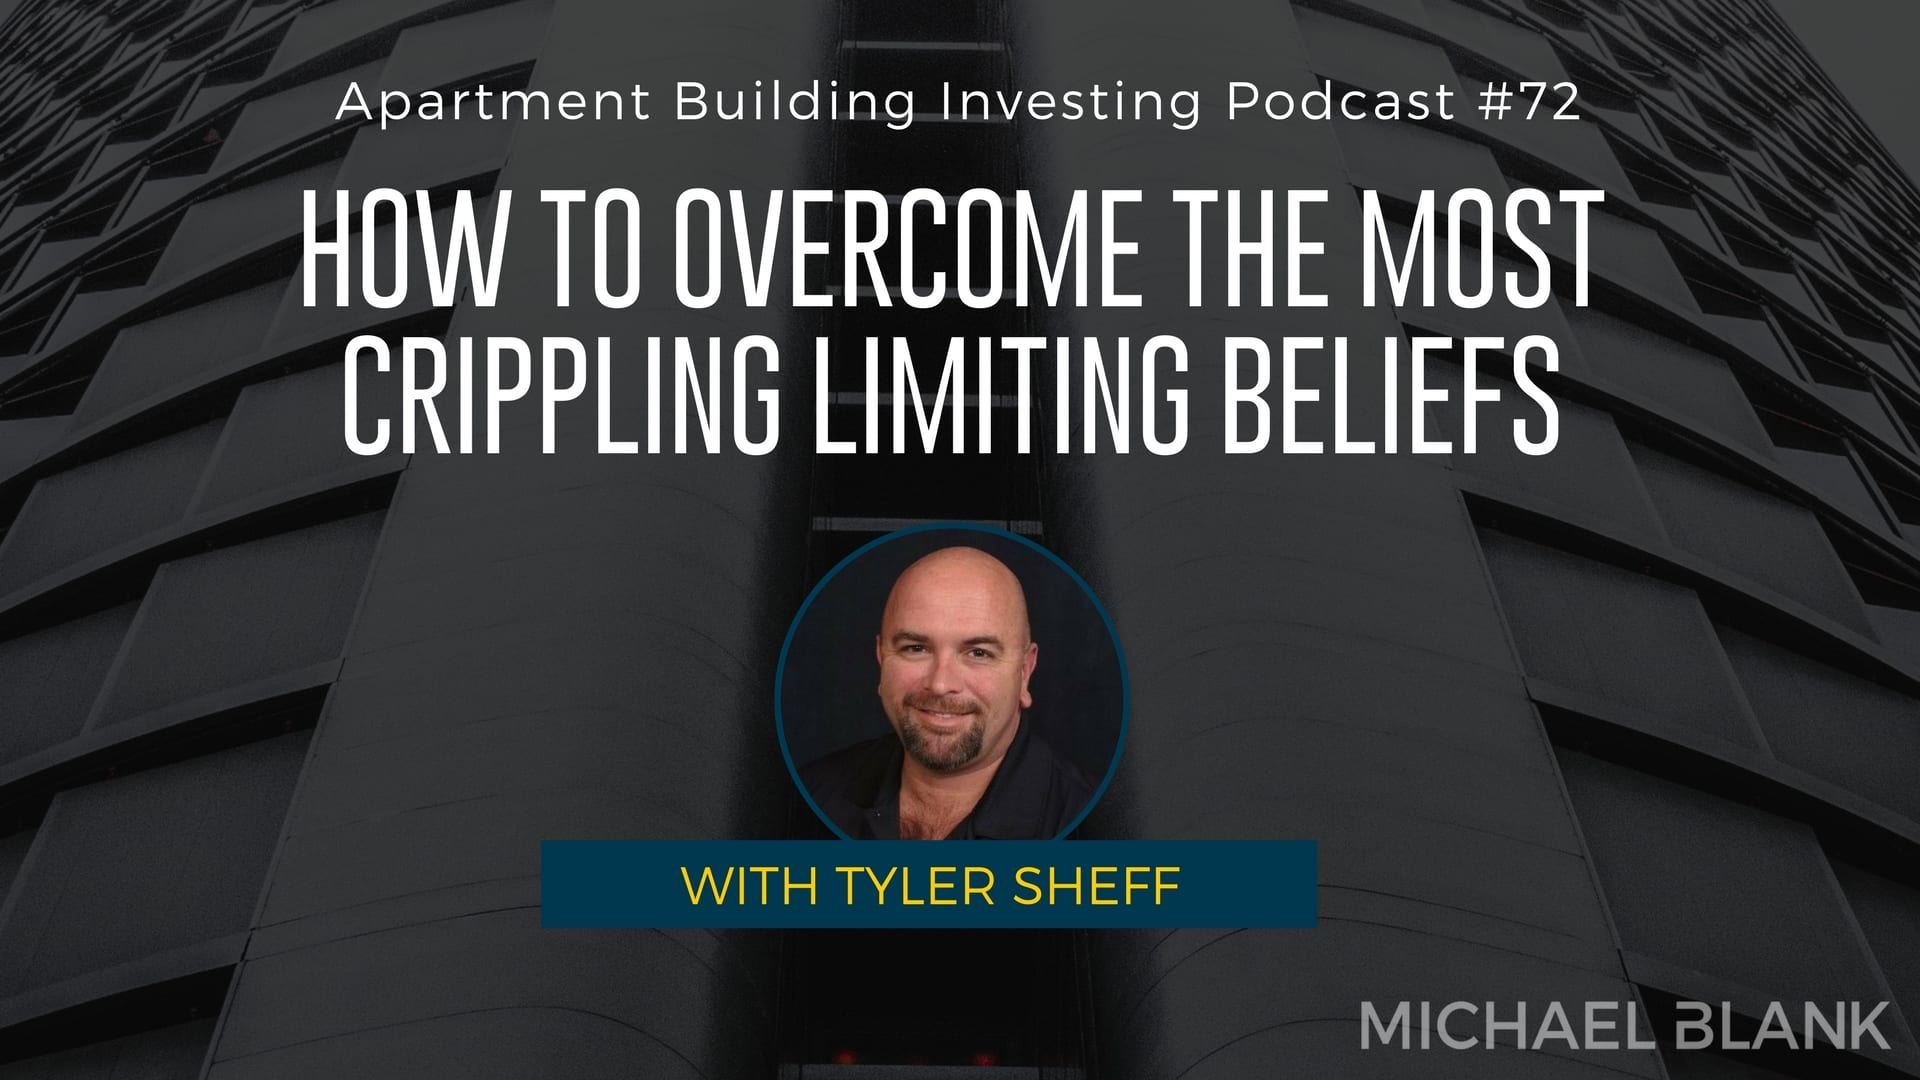 MB 072: How to Overcome the Most Crippling Limiting Beliefs – With Tyler Sheff